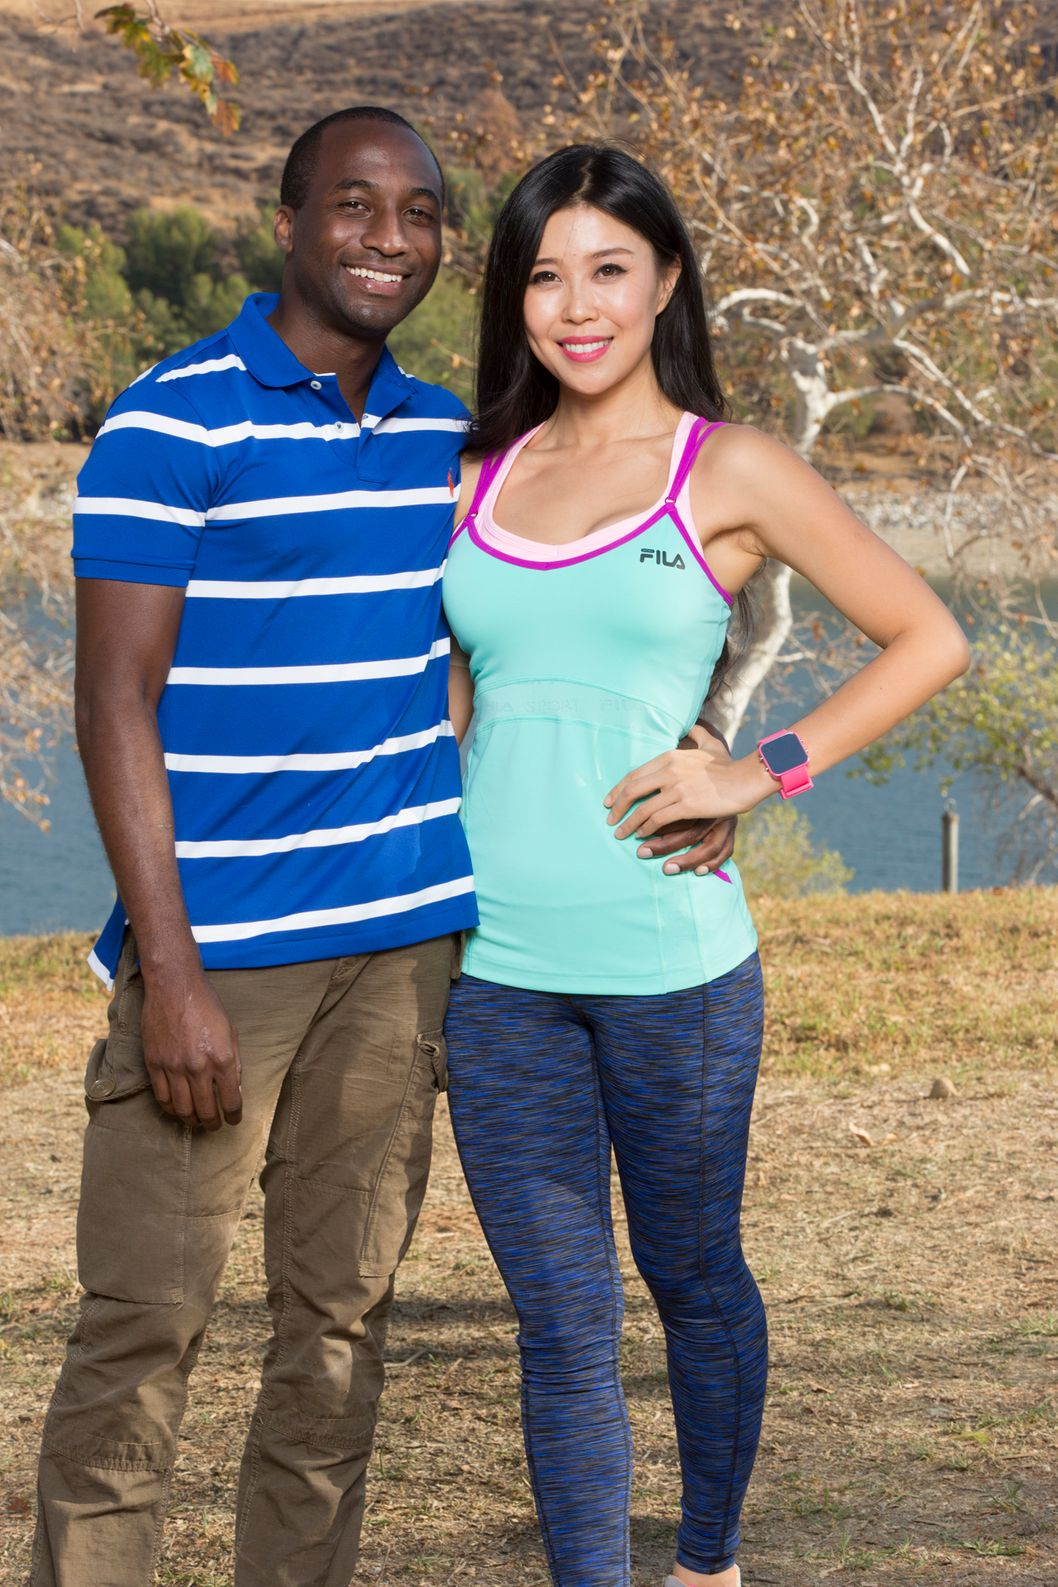 Do any of the amazing race blind date couples have a shot we rate the